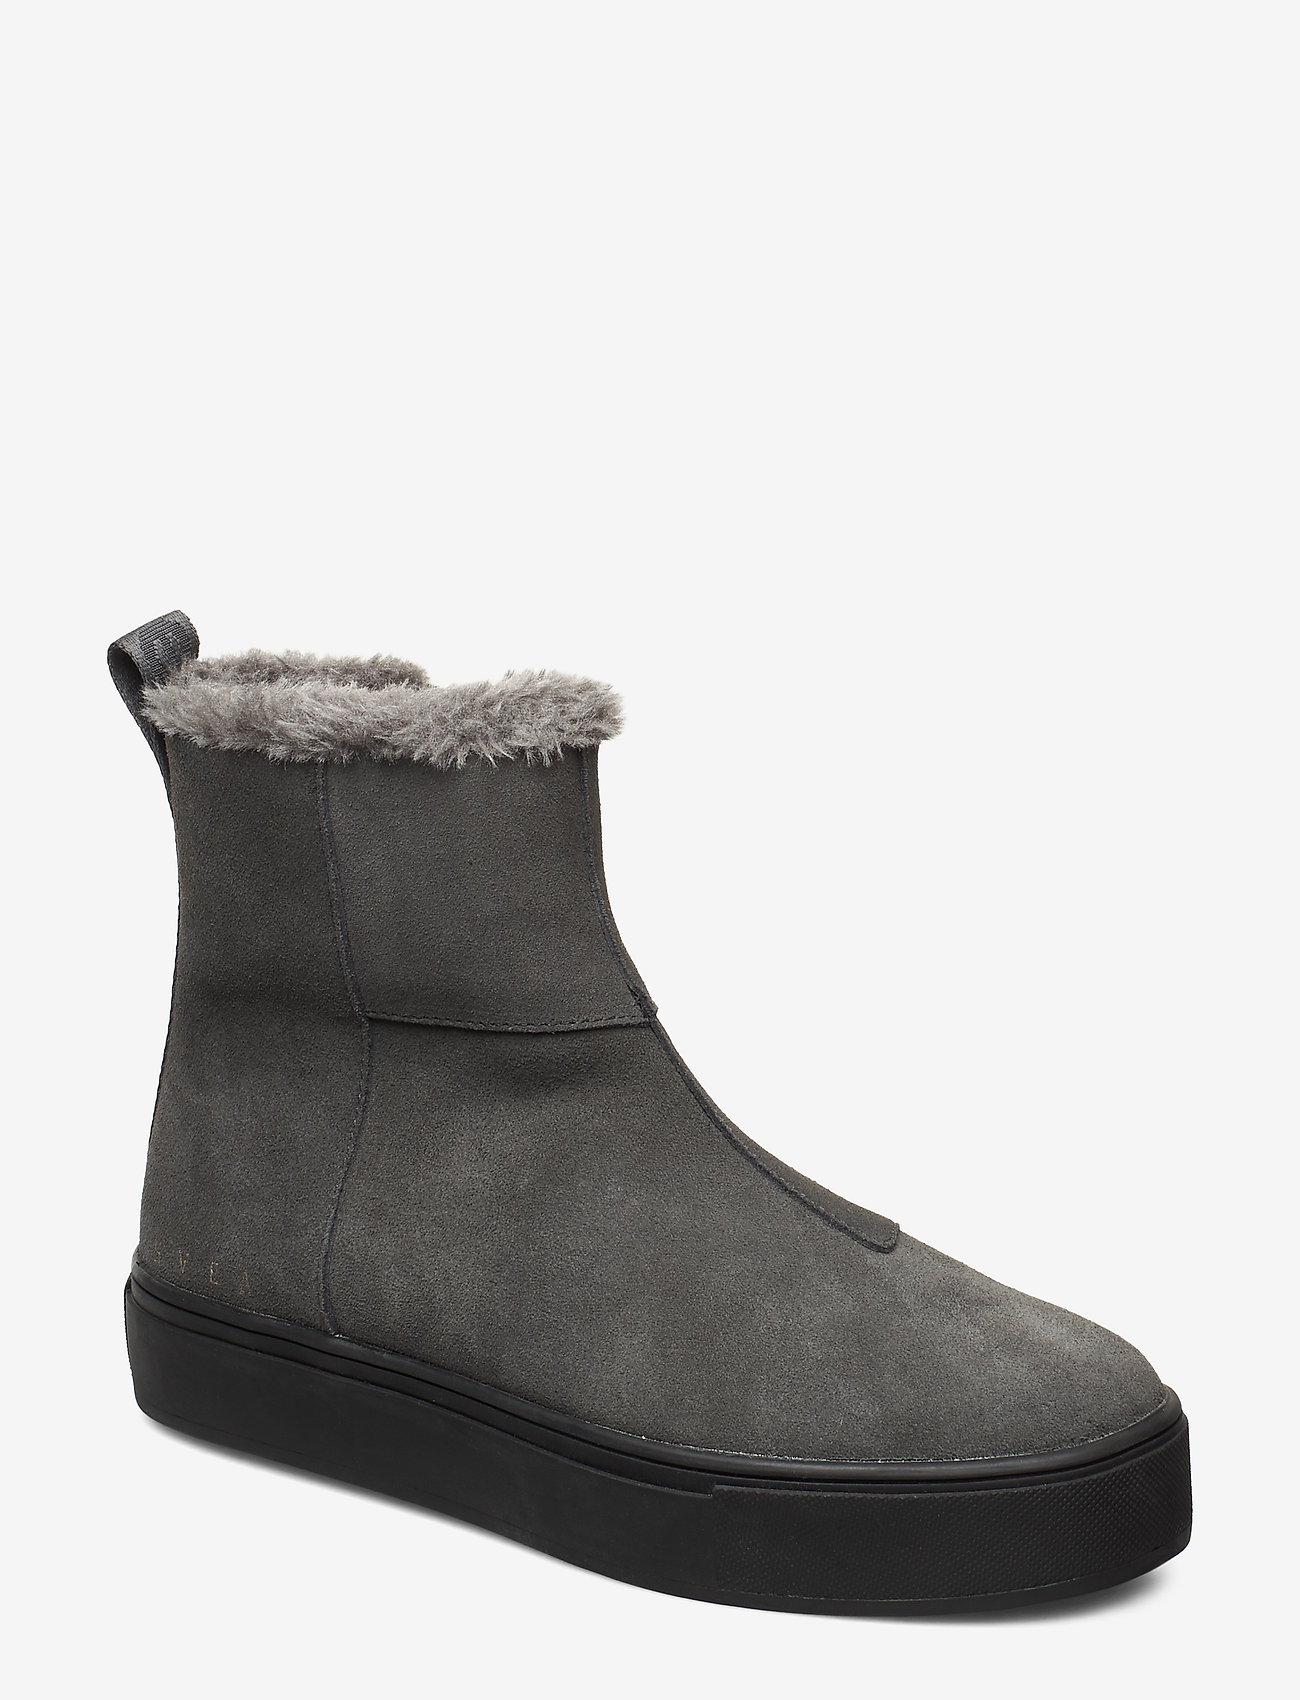 Svea - Suede / Pile Boots - flat ankle boots - grey - 0